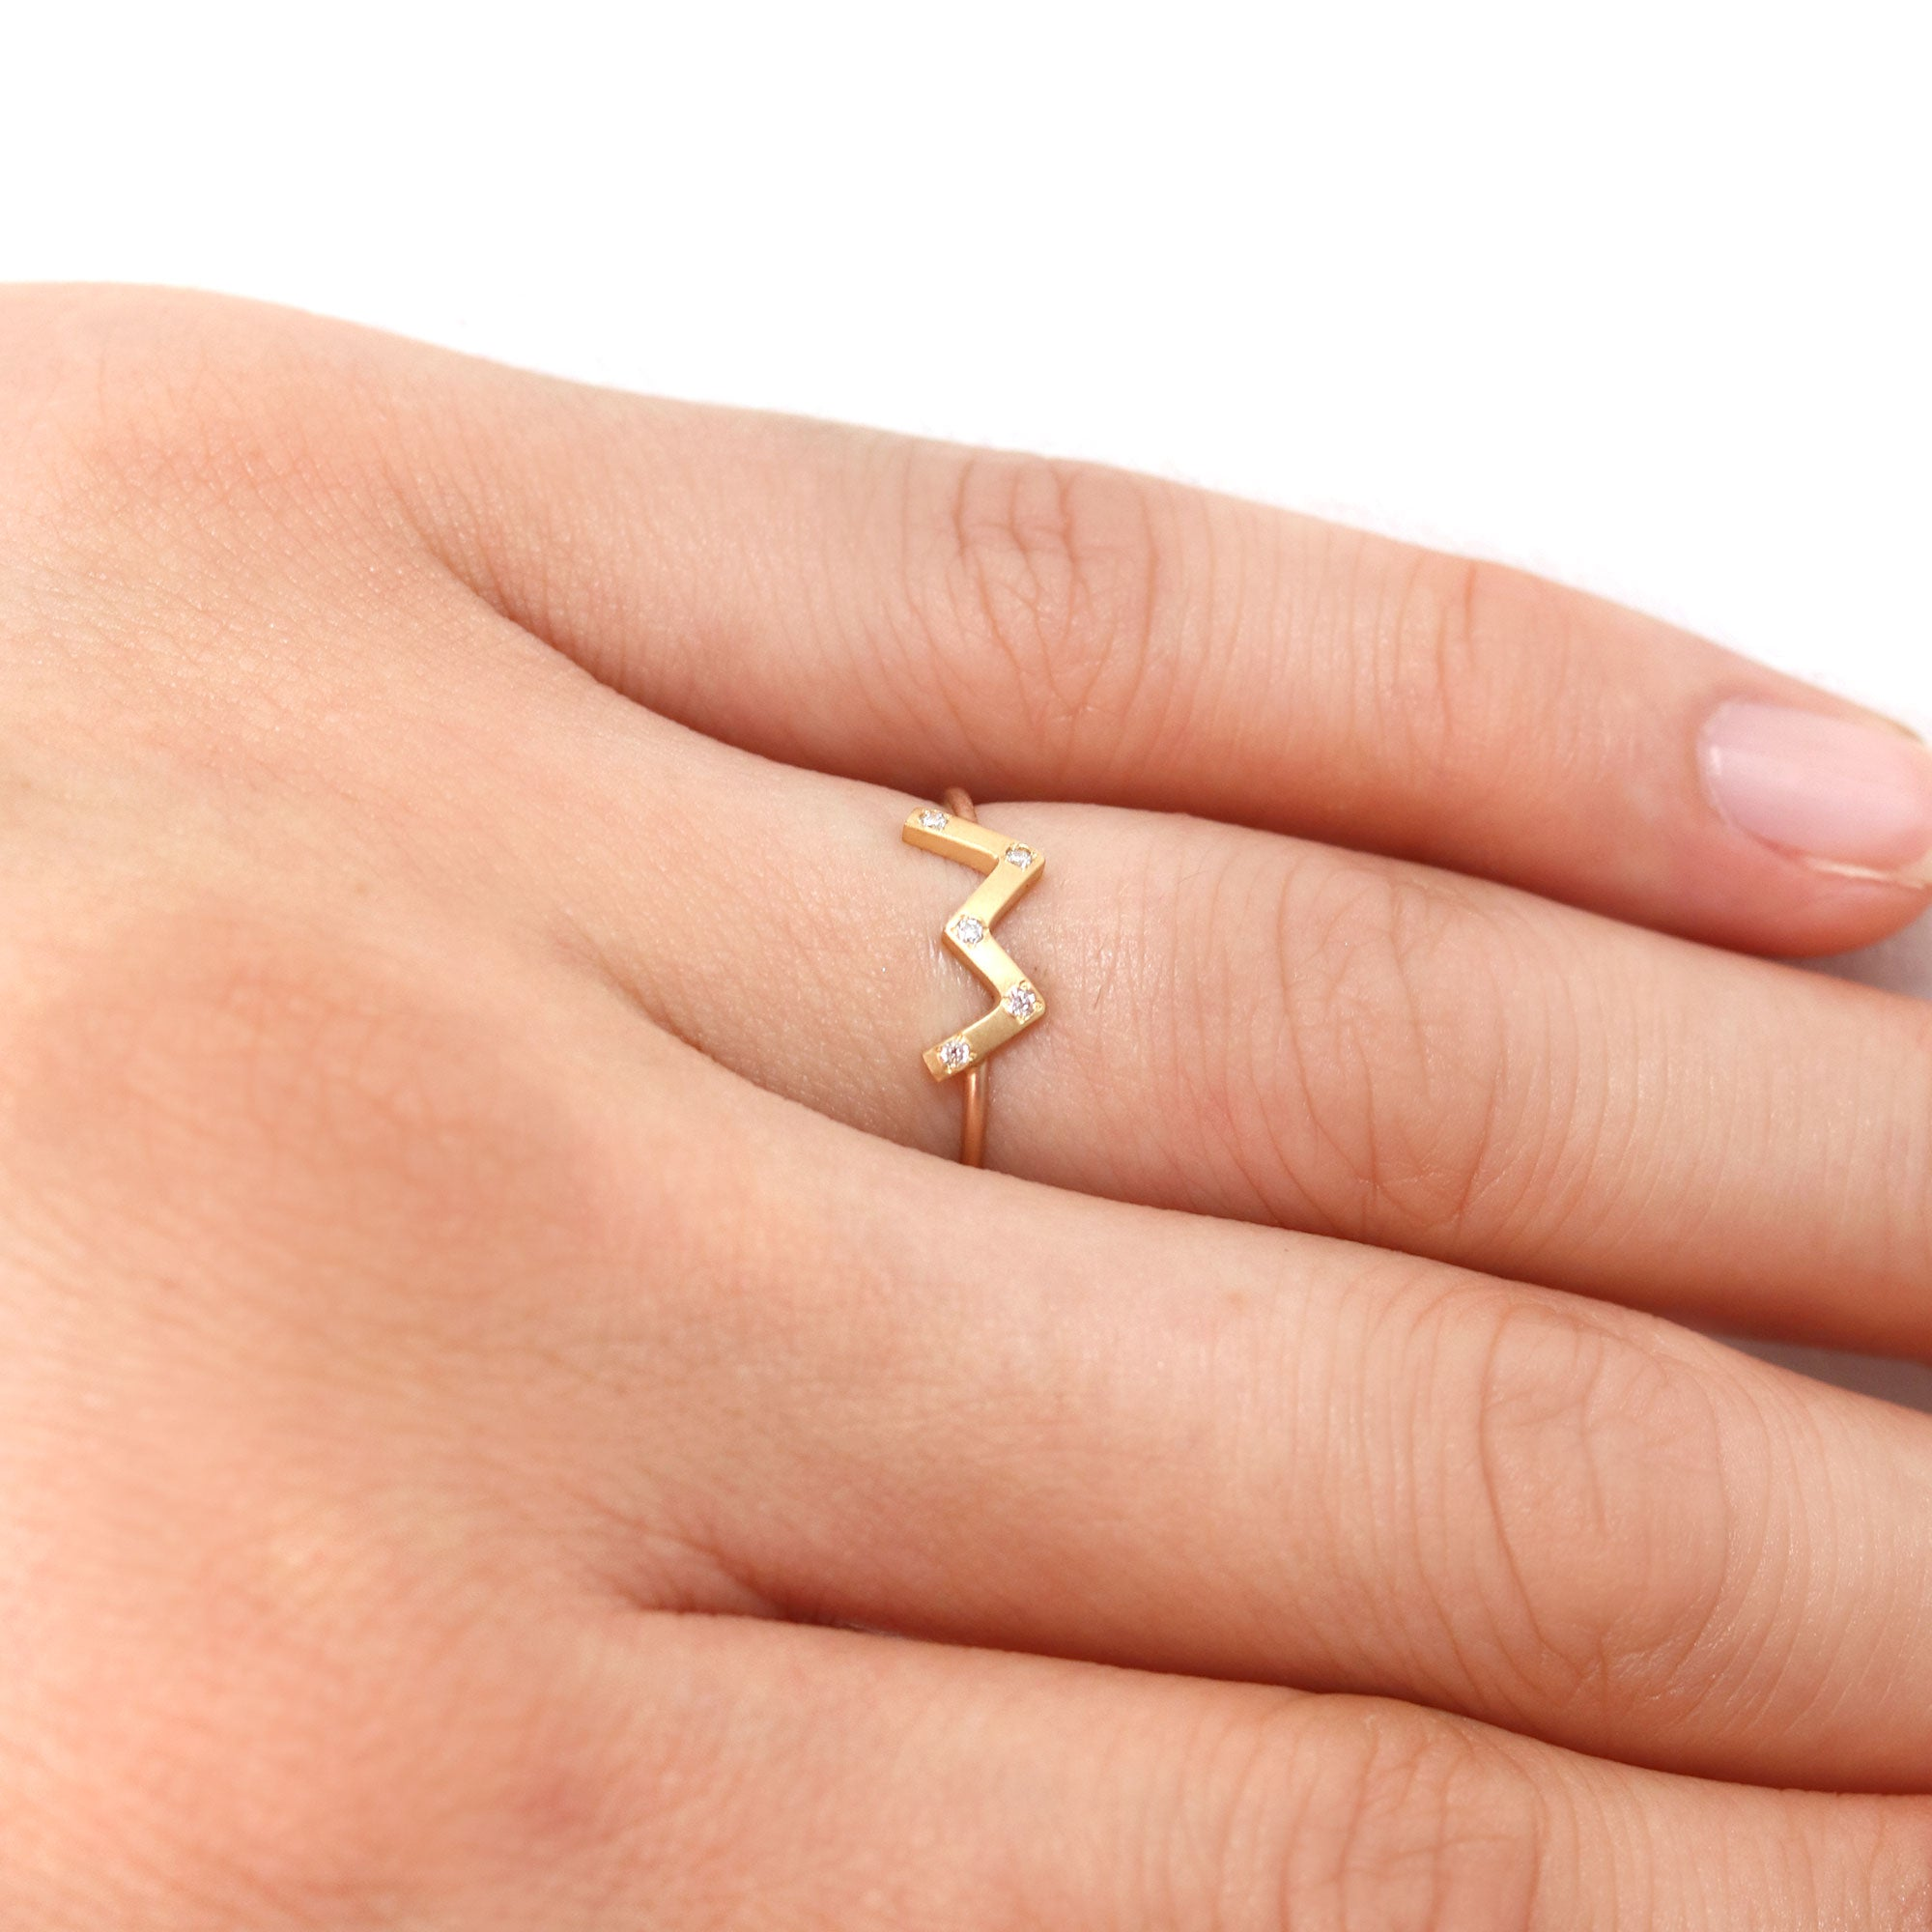 Cassiopeia deco ring